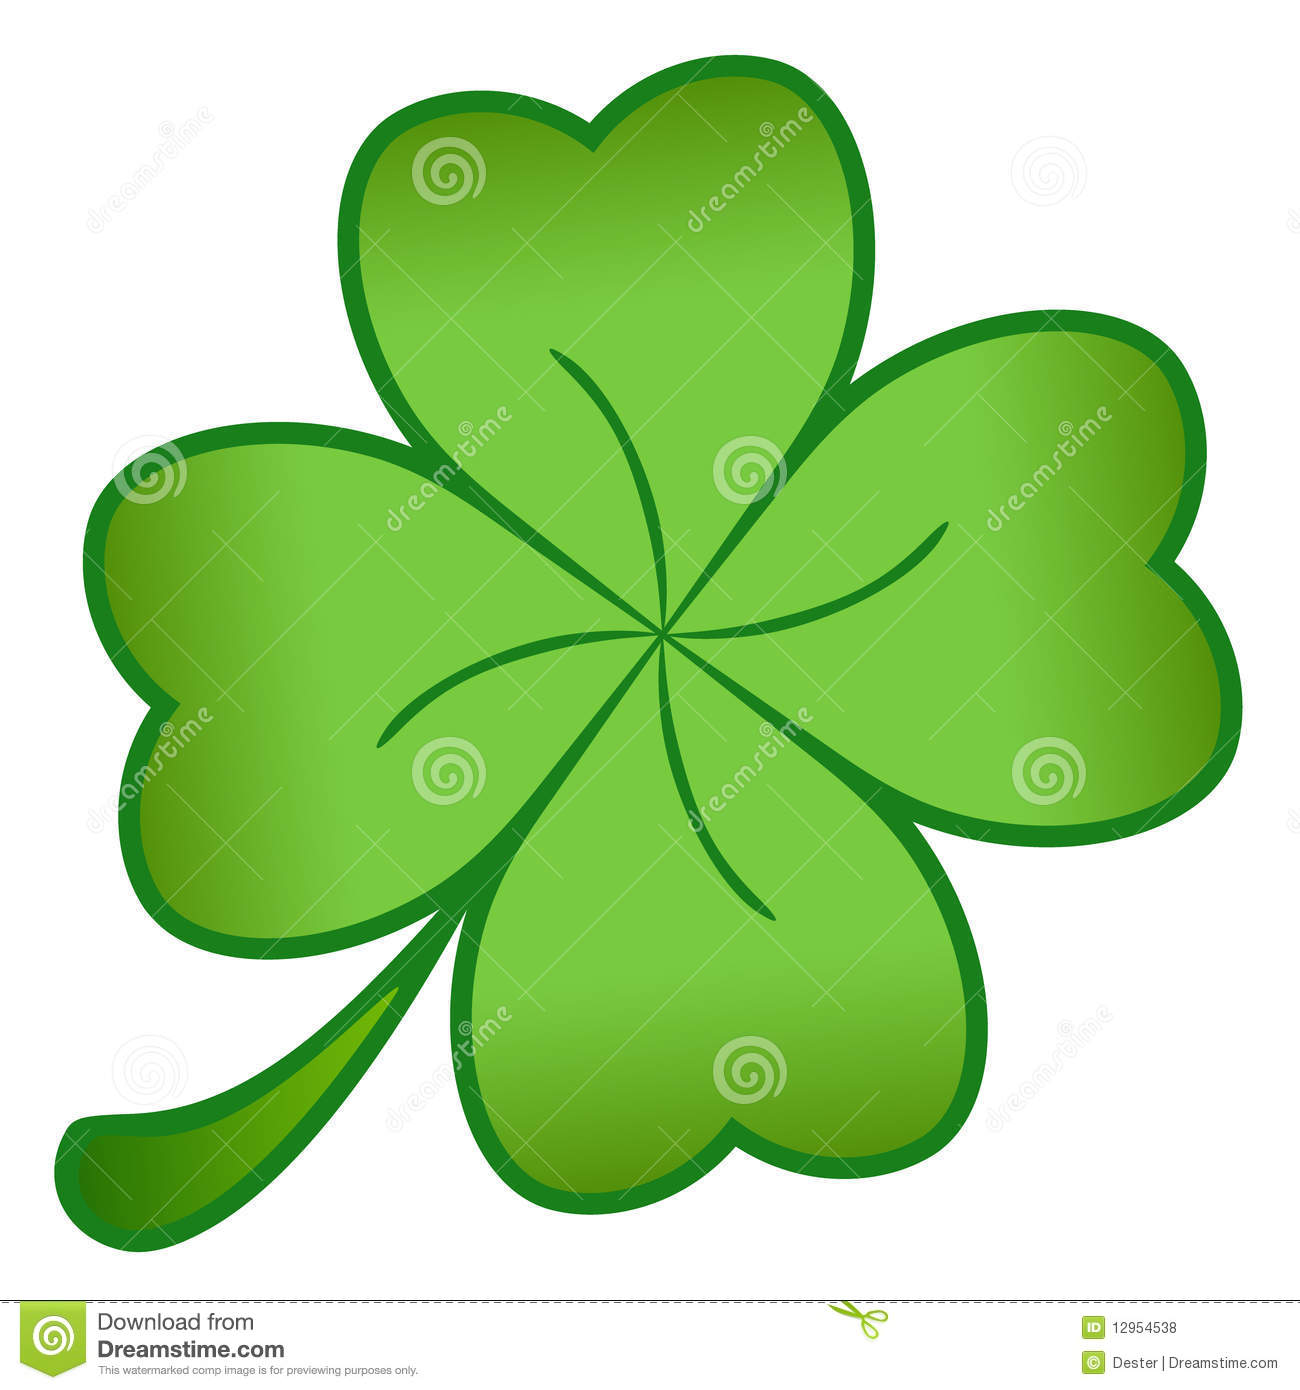 Green Cloverleaf Royalty Free Stock Photos - Image: 12954538